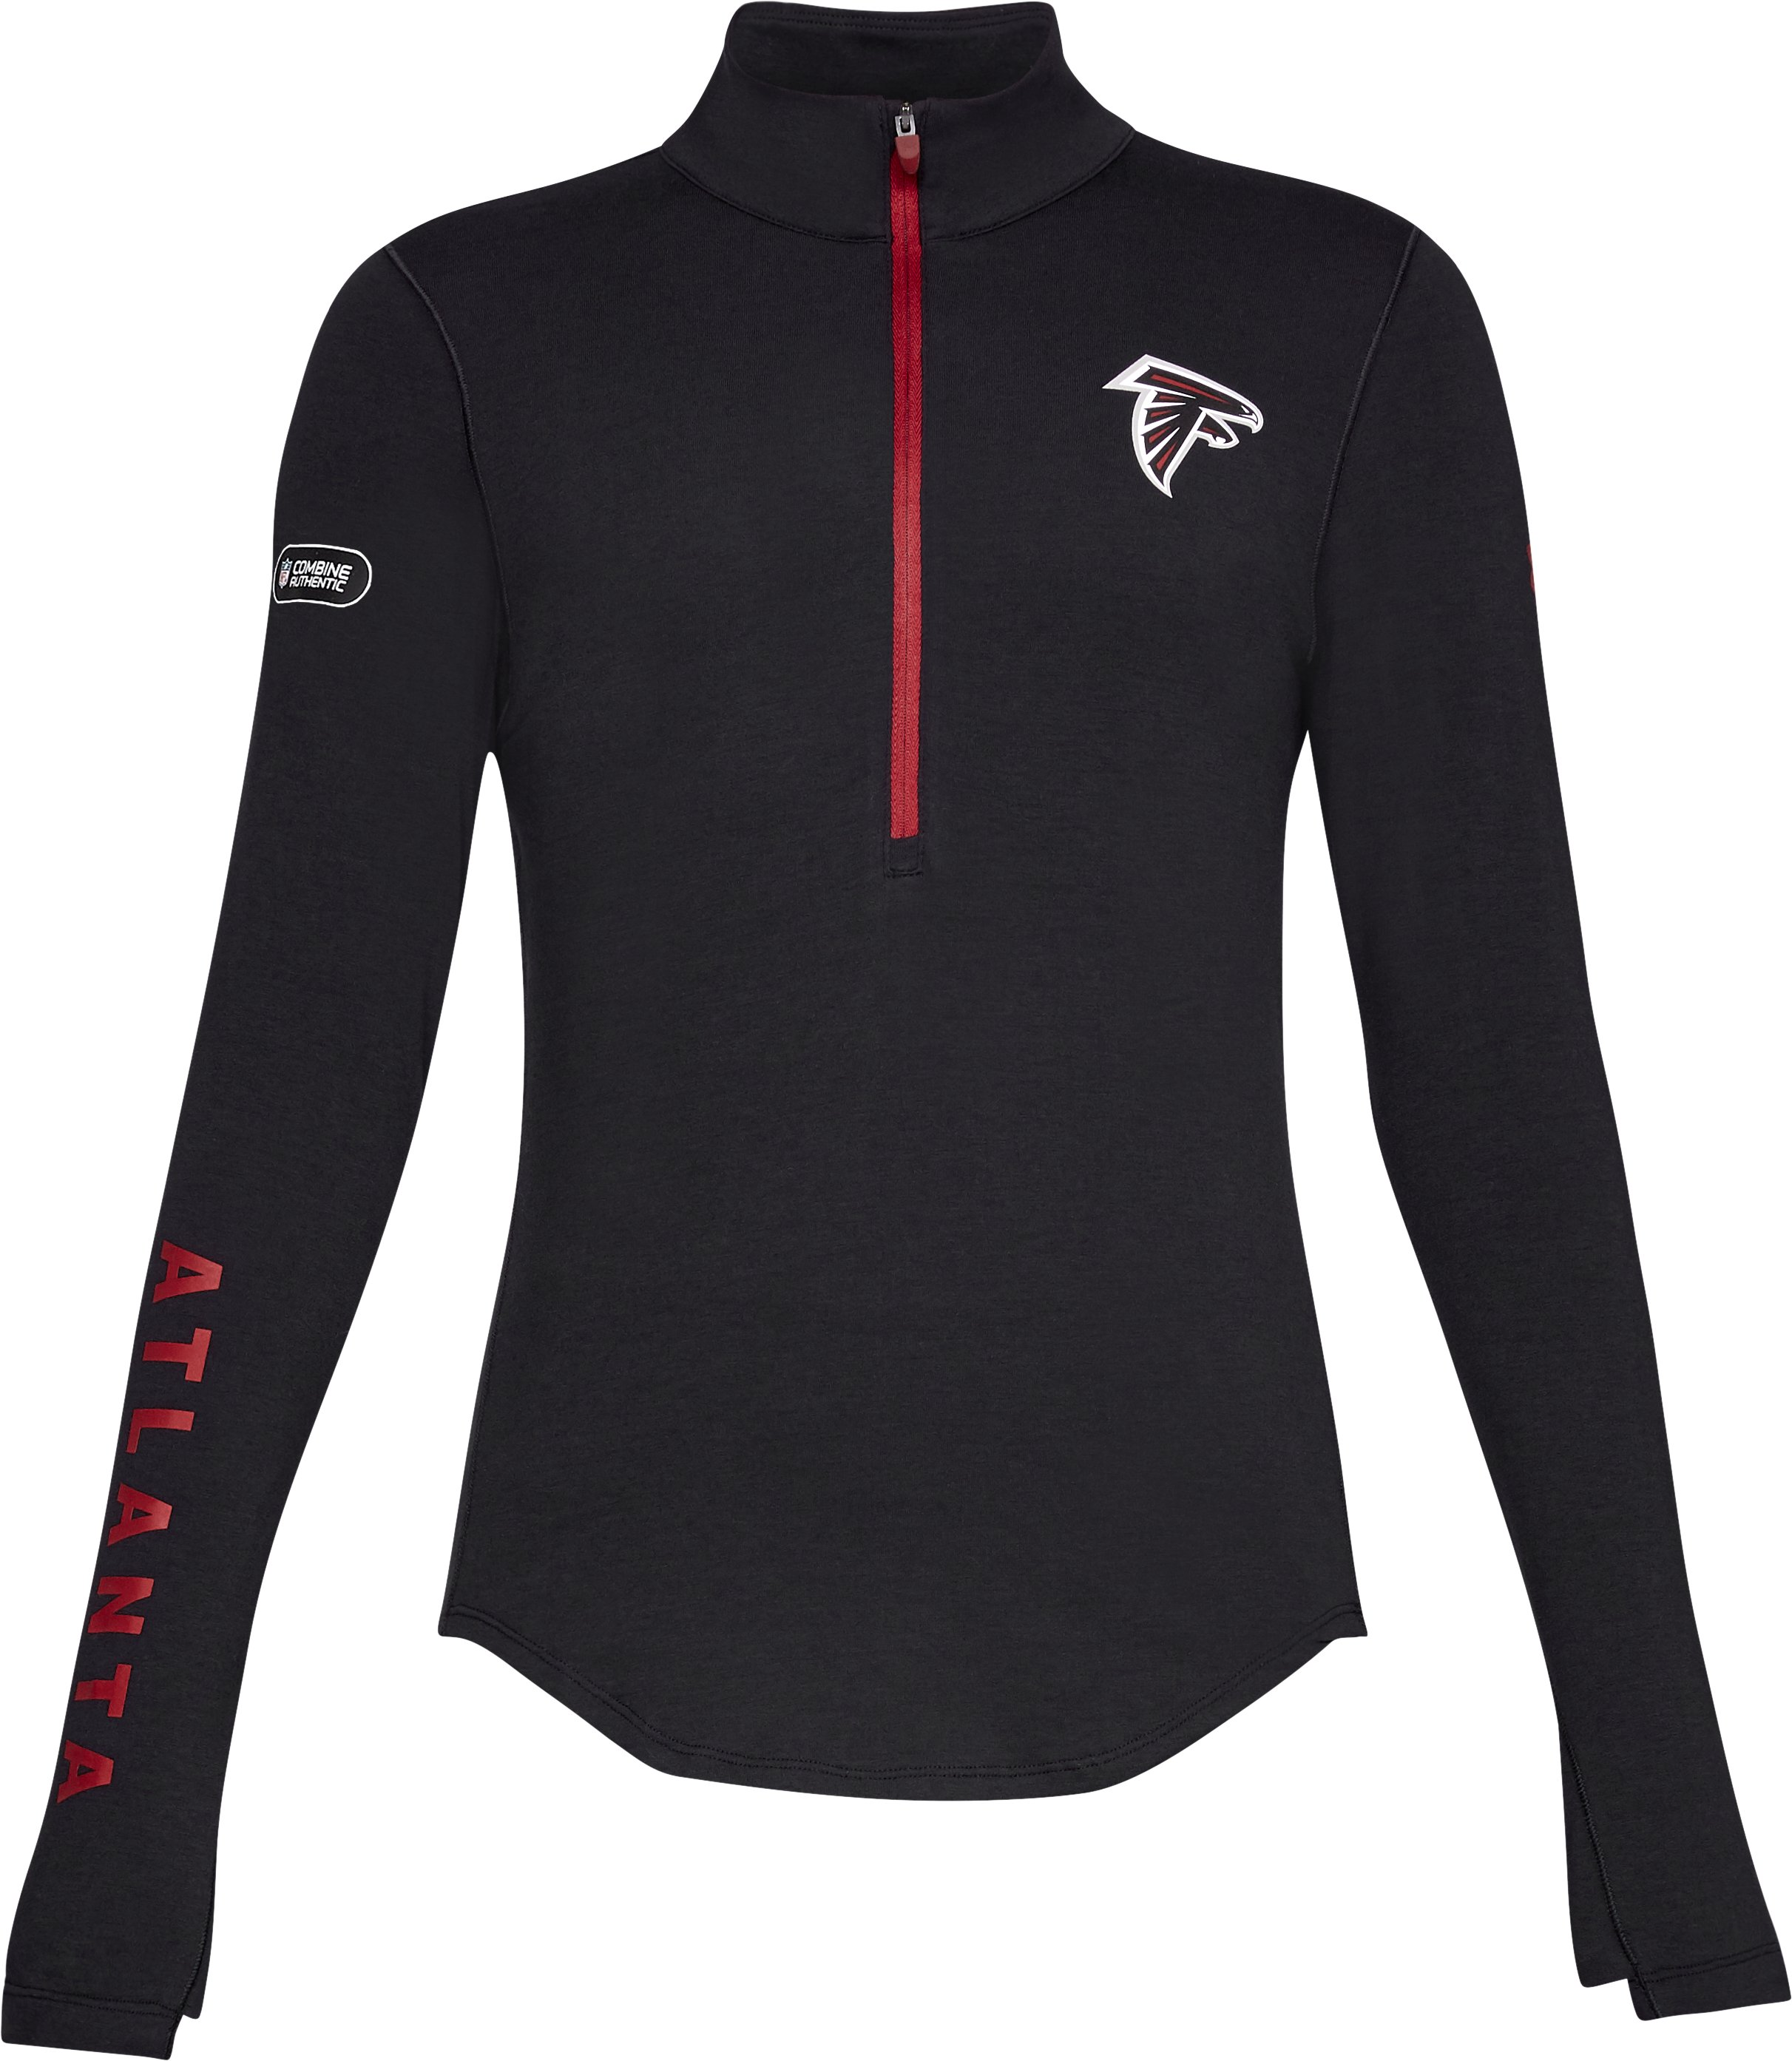 Women's NFL Combine Authentic UA Favorite ½ Zip Long Sleeve Shirt, NFL_Atlanta Falcons_Black,